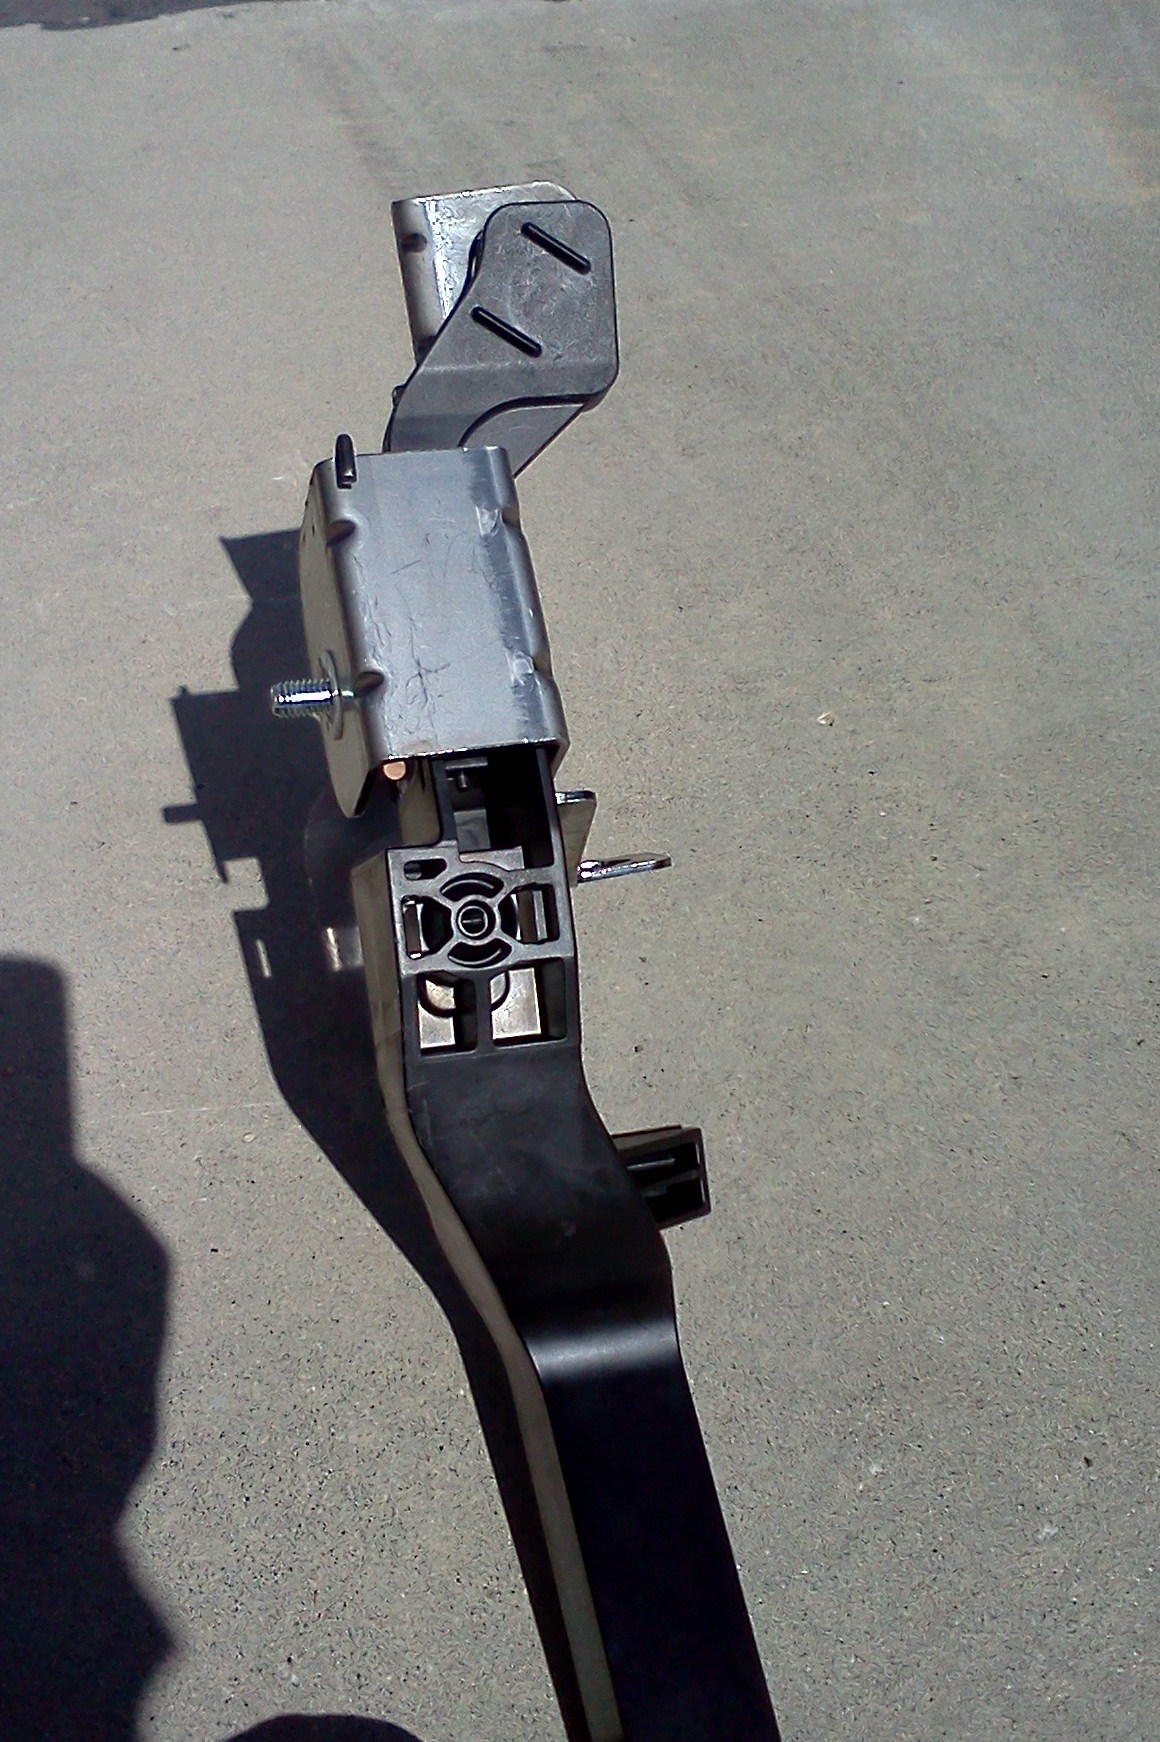 clutch pedal (new) front view